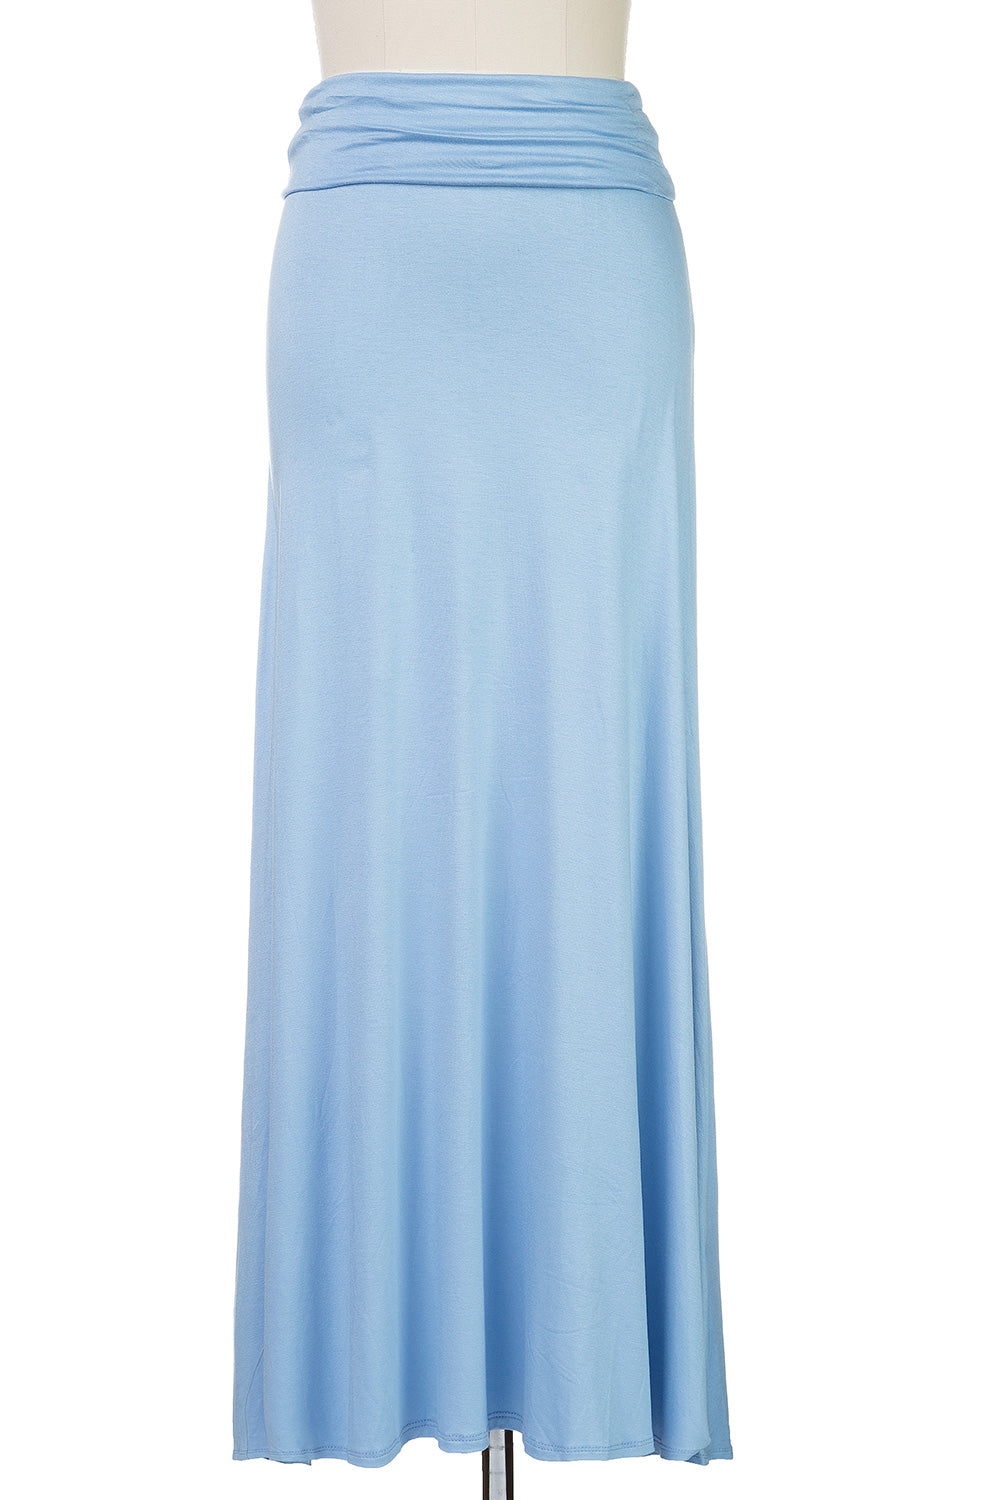 Type 2 Light Blue Maxi Skirt